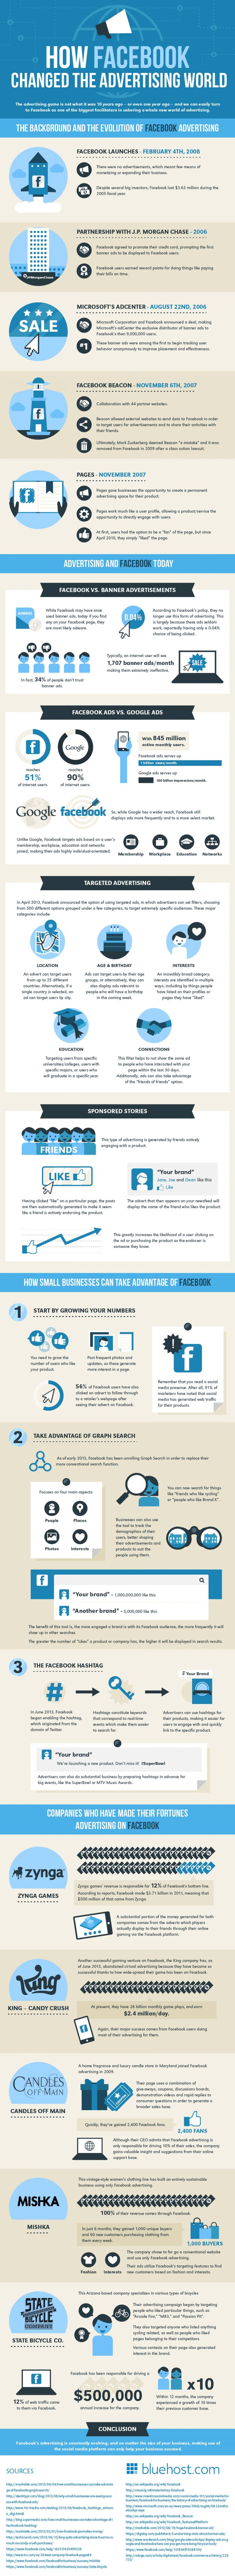 How Facebook Changed the Advertising World #Infographic #FacebookTips #FacebookMarketing www.november.media